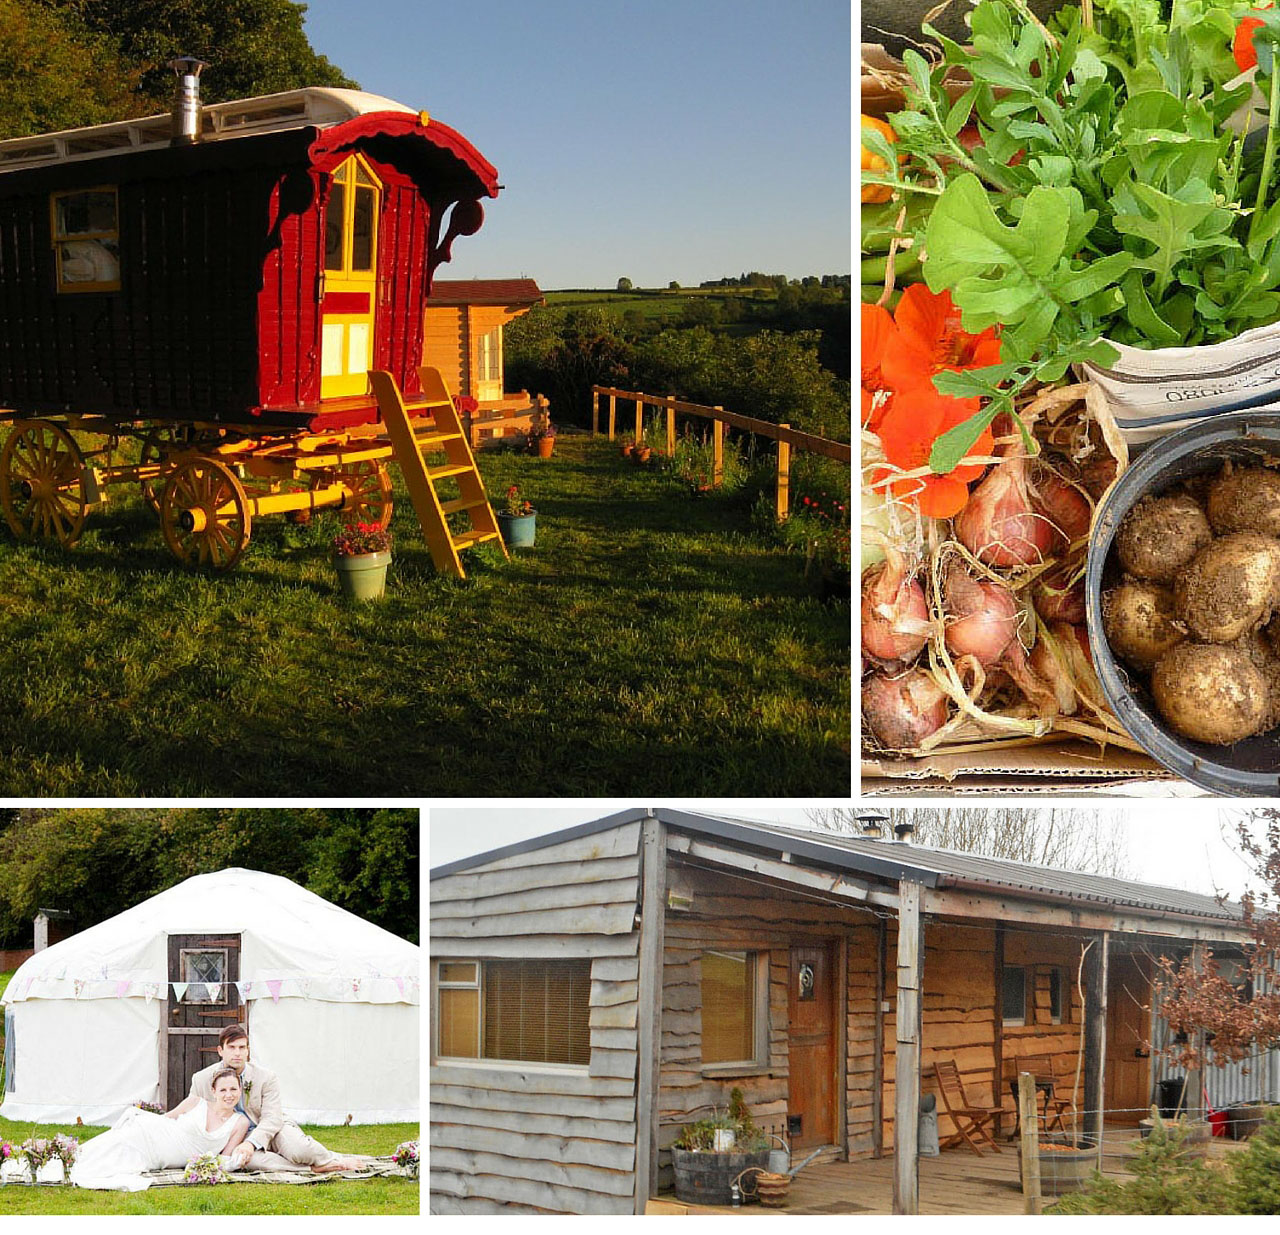 Four images in a collage, gypsy caravan, a box of vegetables, a bride and groom outside a yurt and a wood cladded shack